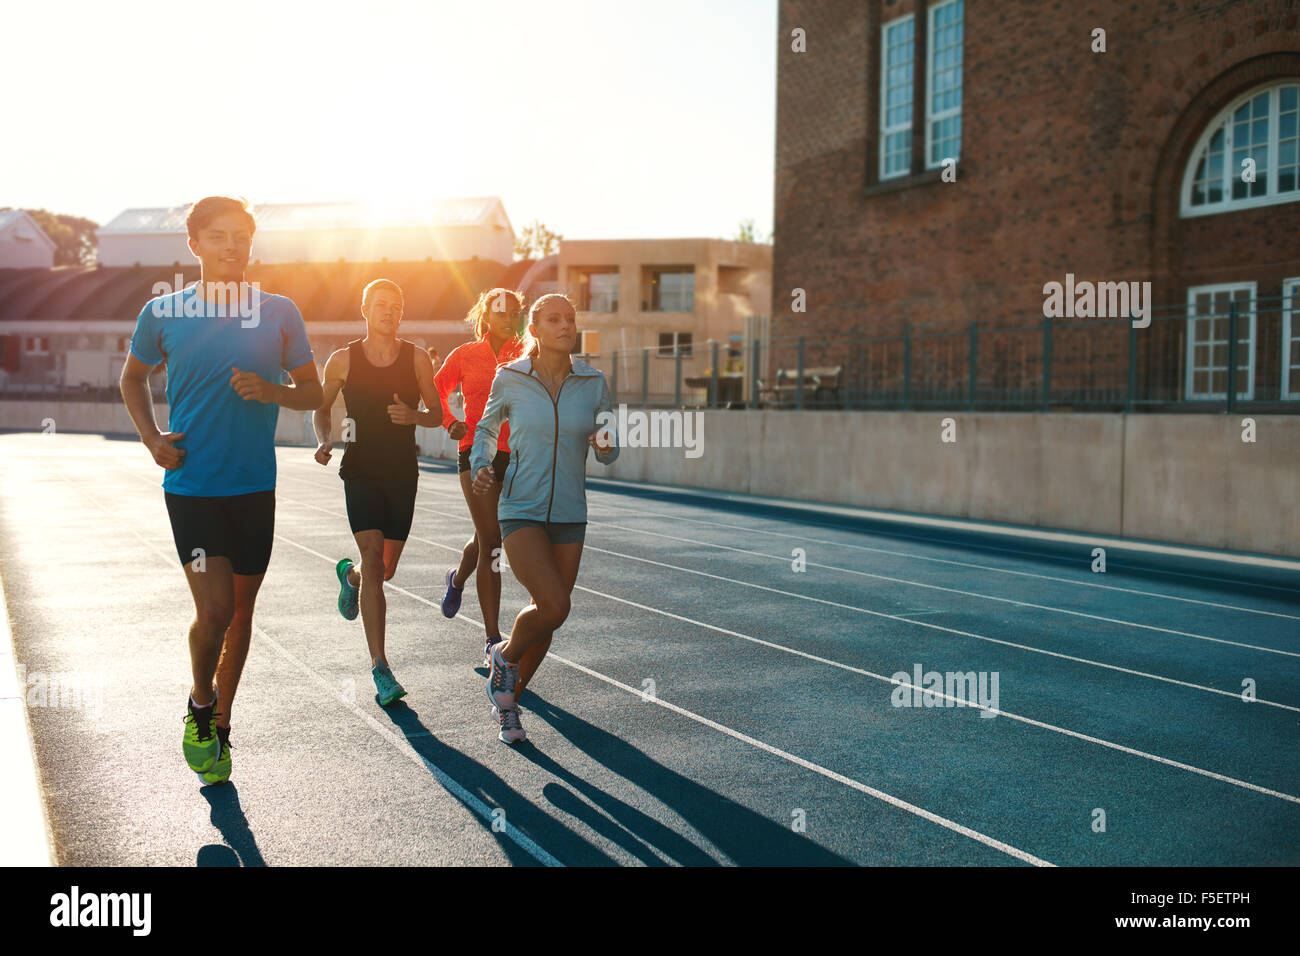 Professional runners running on a race track. Multiracial athletes practicing on race track in stadium on a bright - Stock Image